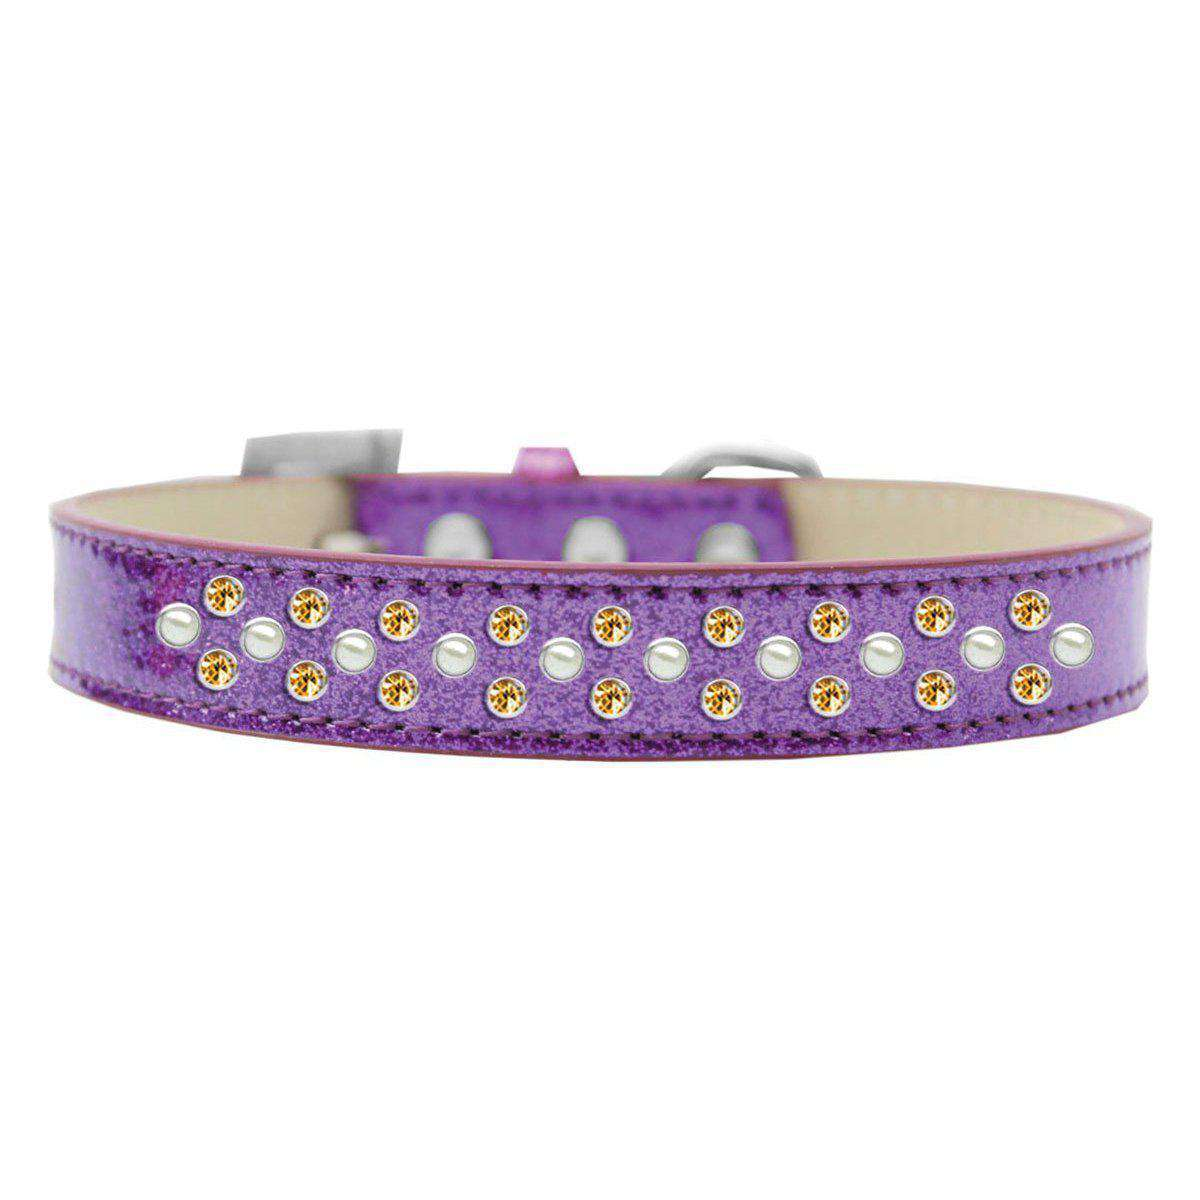 Mirage Pet Sprinkles Ice Cream Adjustable Dog Collar Pearl And Yellow Crystals Size 14 - Purple-Mirage Pet Products-DirtyFurClothing